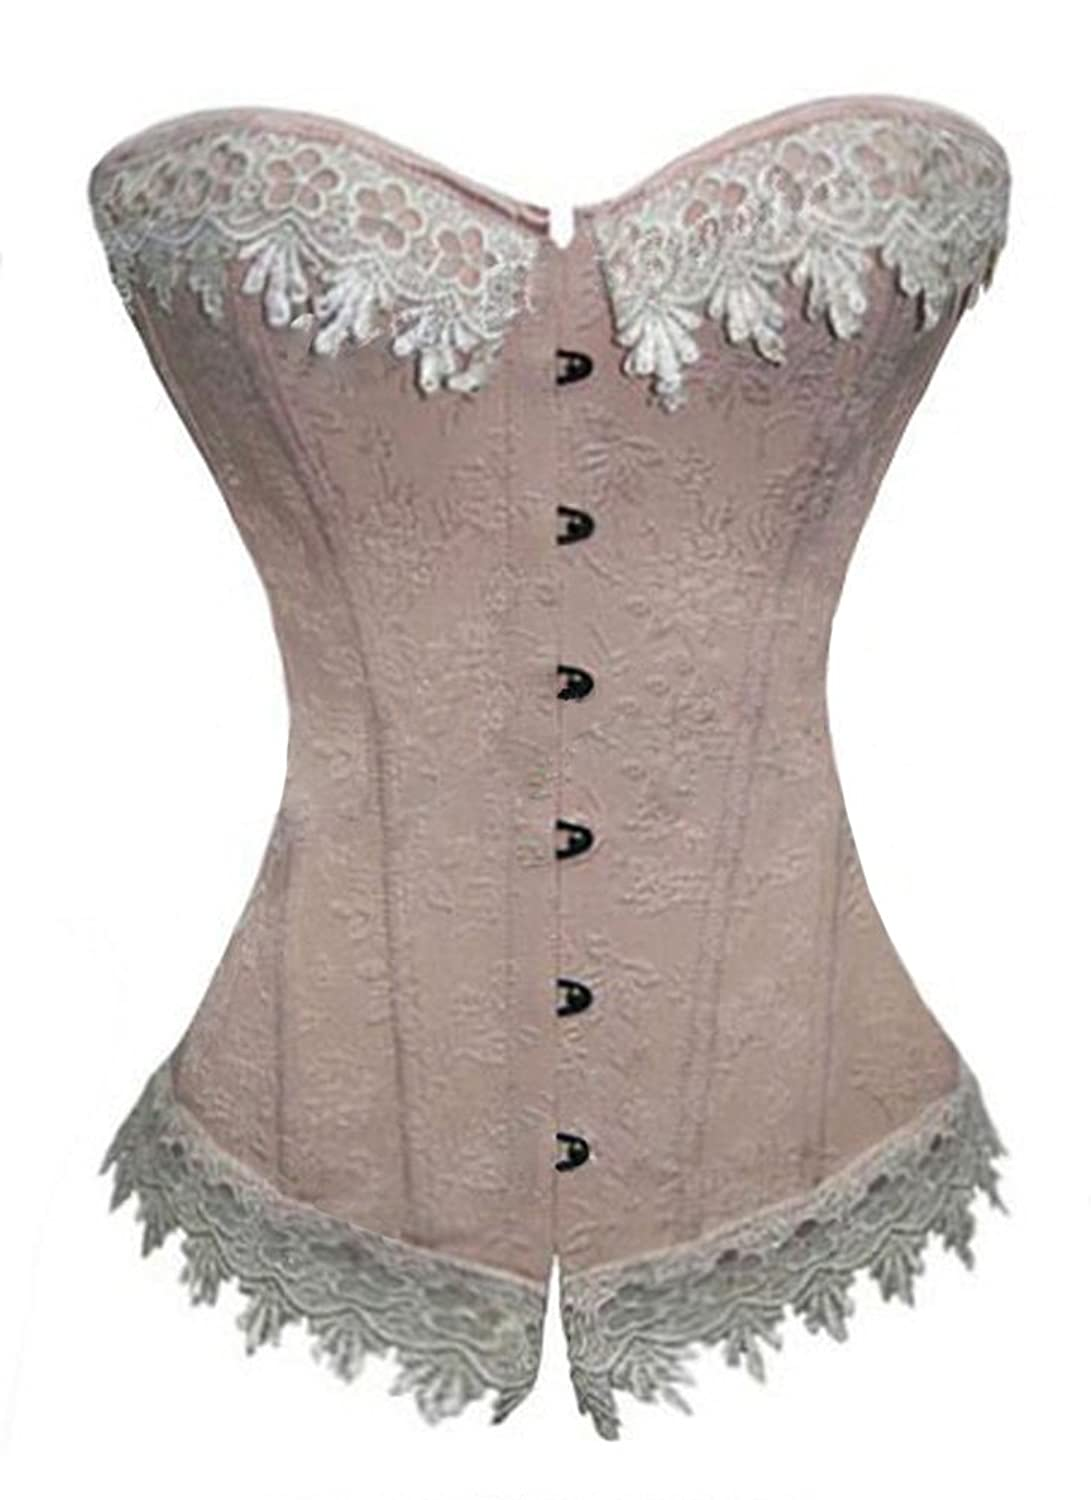 Victorian Corsets – Old Fashioned Corsets & Patterns Luvsecretlingerie Moulin Rouge Victorian Overbust Fashion Corset Bustier $15.99 AT vintagedancer.com